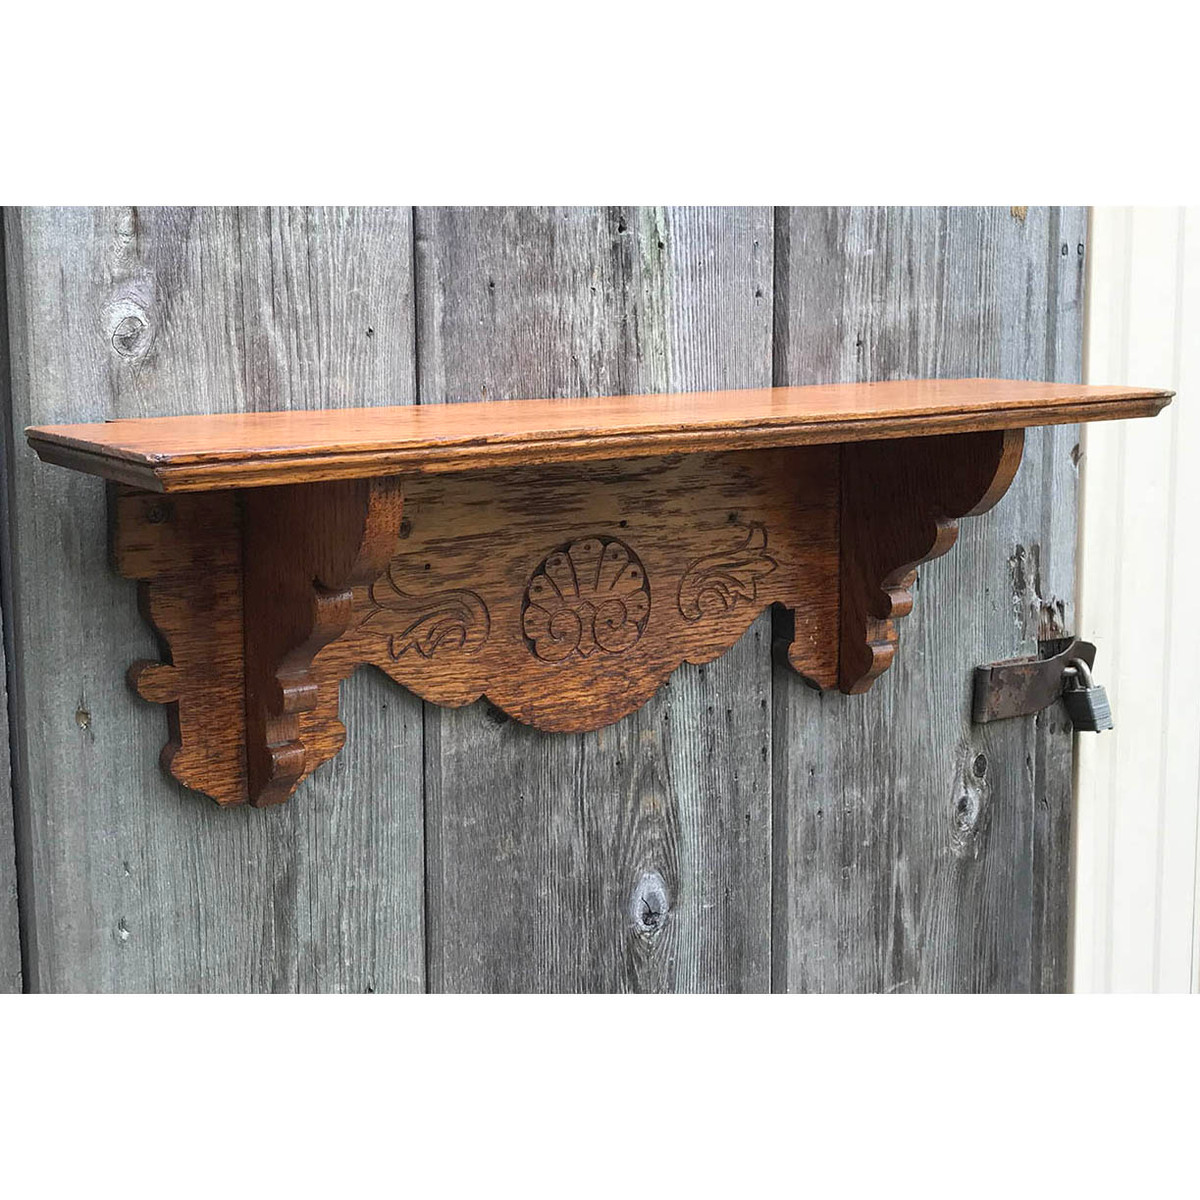 A17107 - Antique Late Victorian Oak Clock Shelf